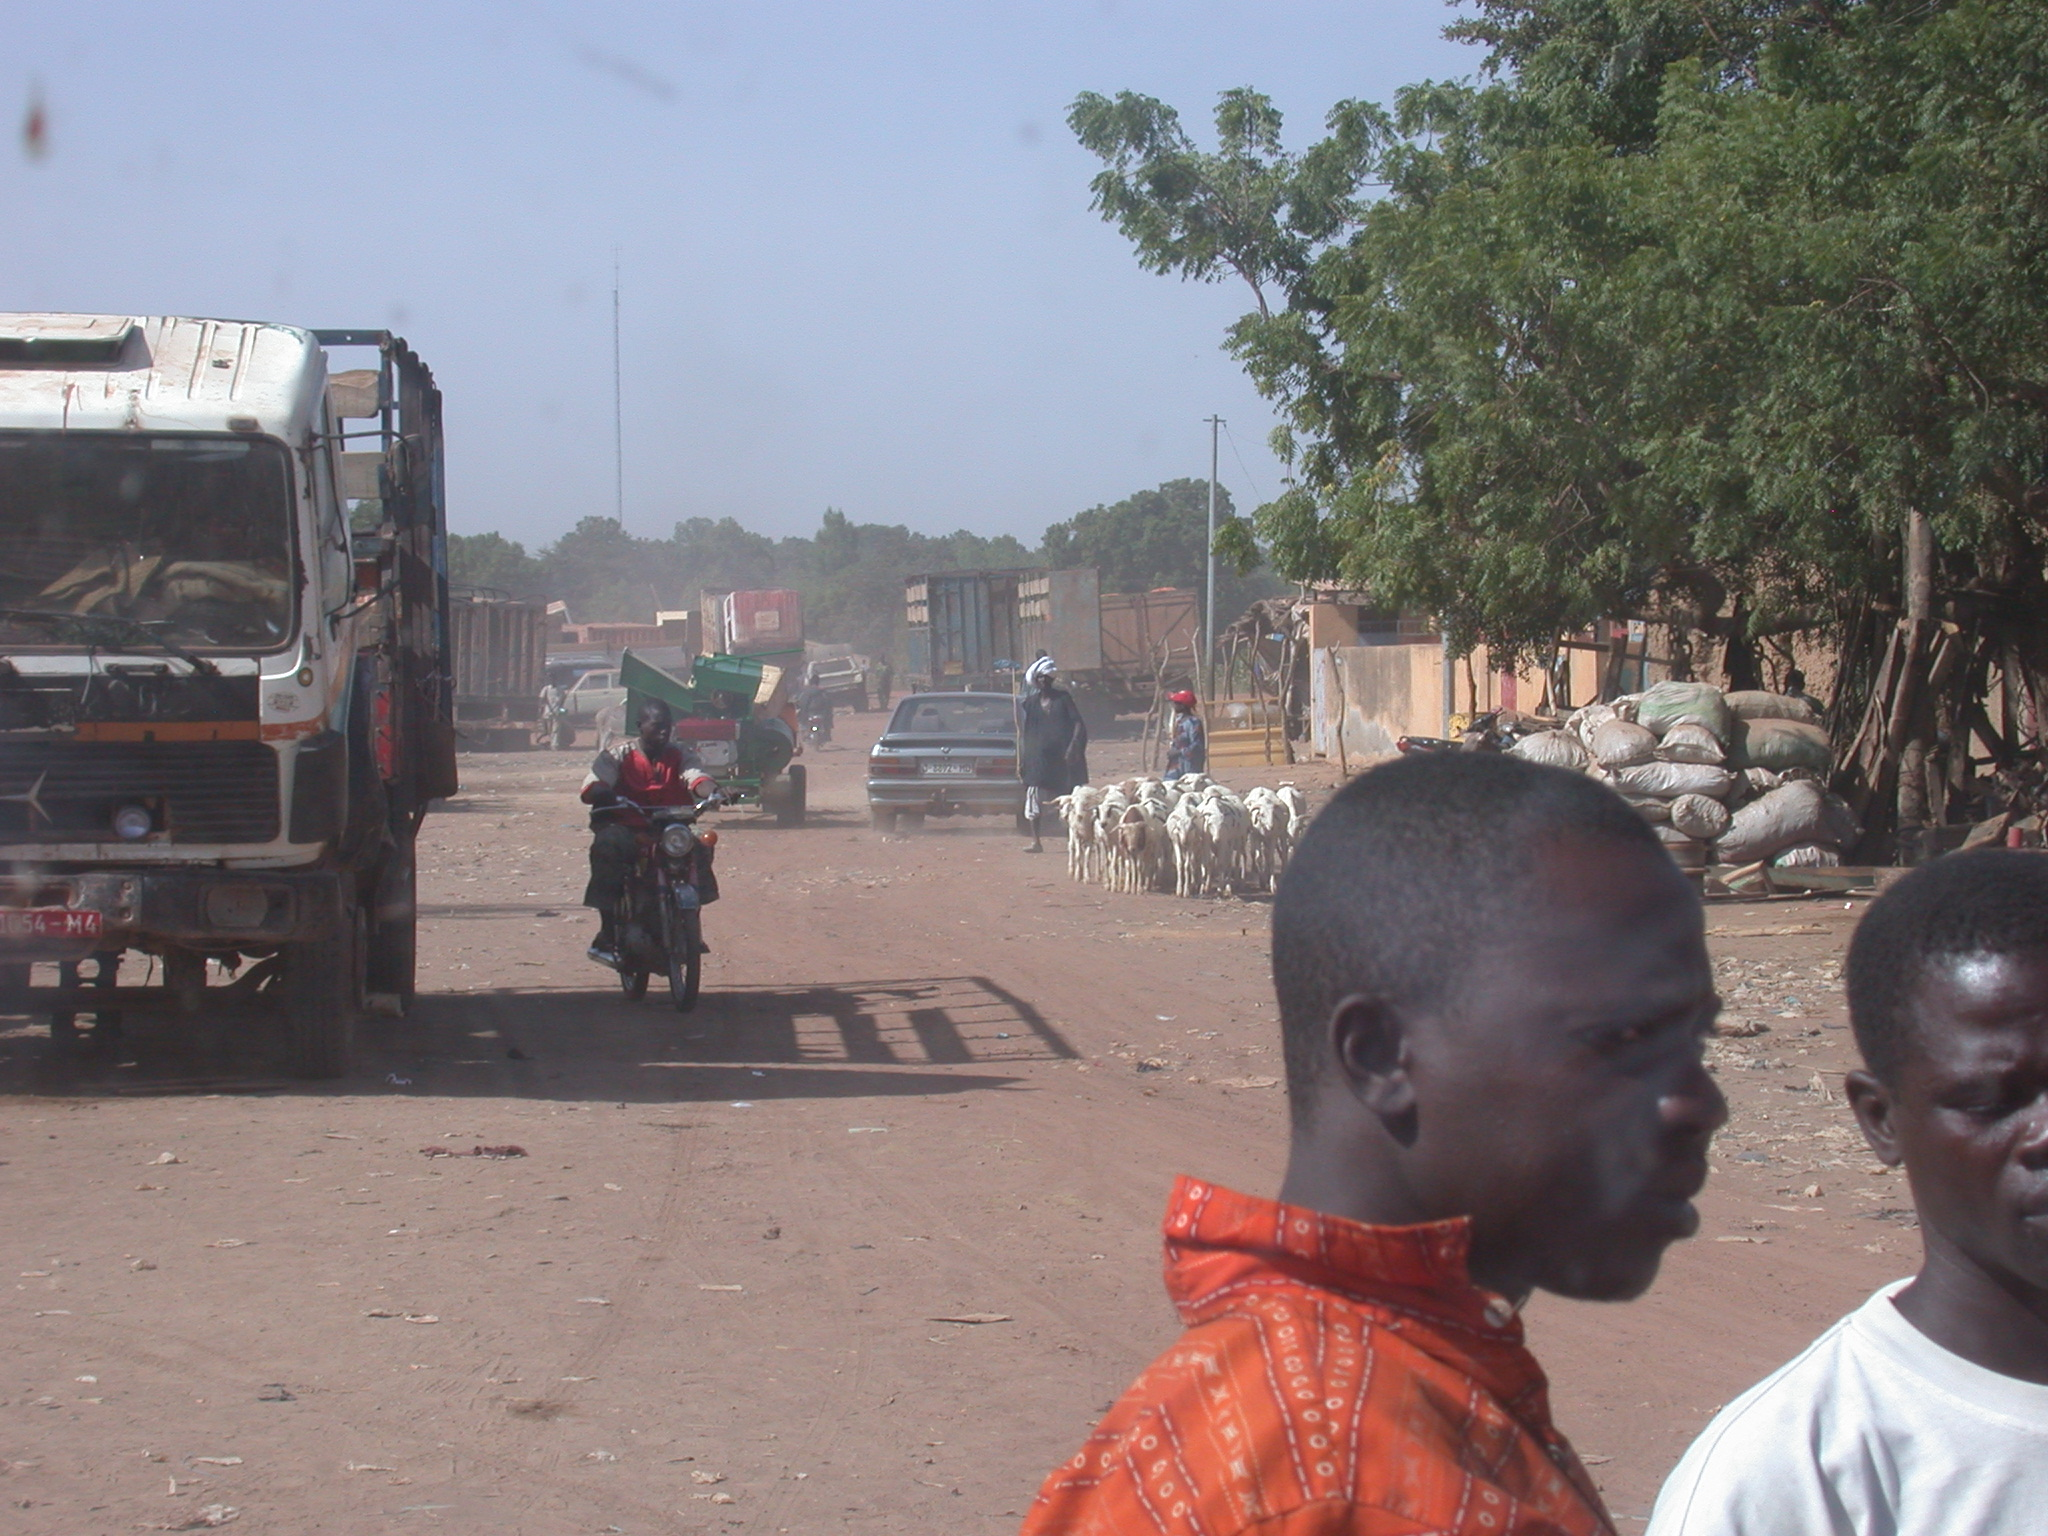 City Scene in Niono, Mali